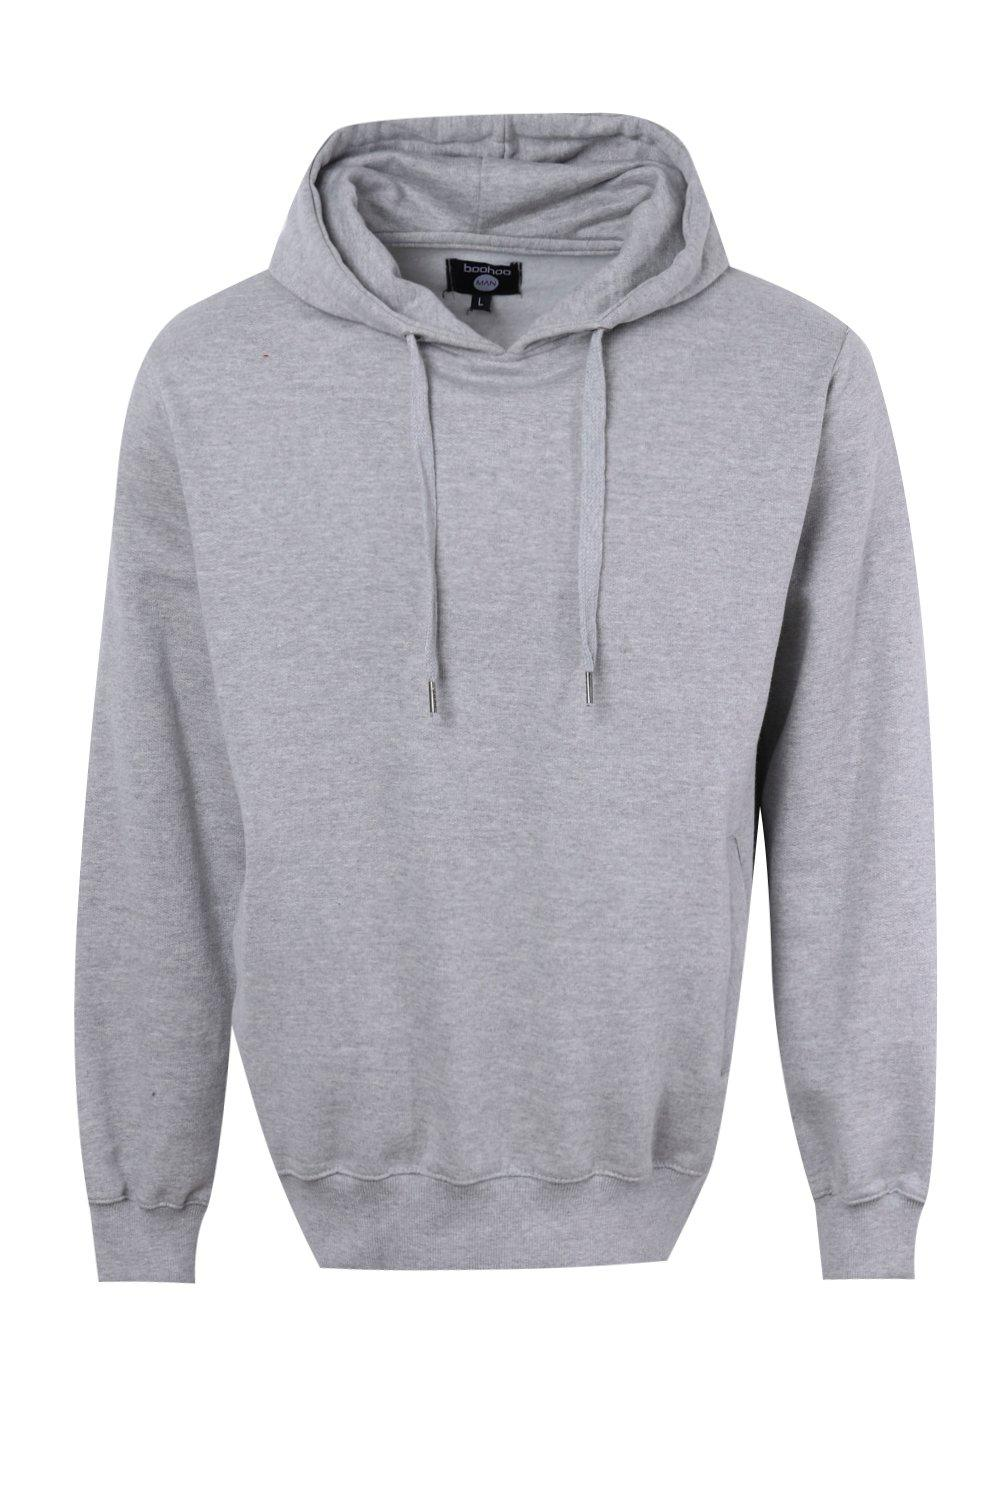 boohooMAN grey Over The Head Hoodie With Side Pockets